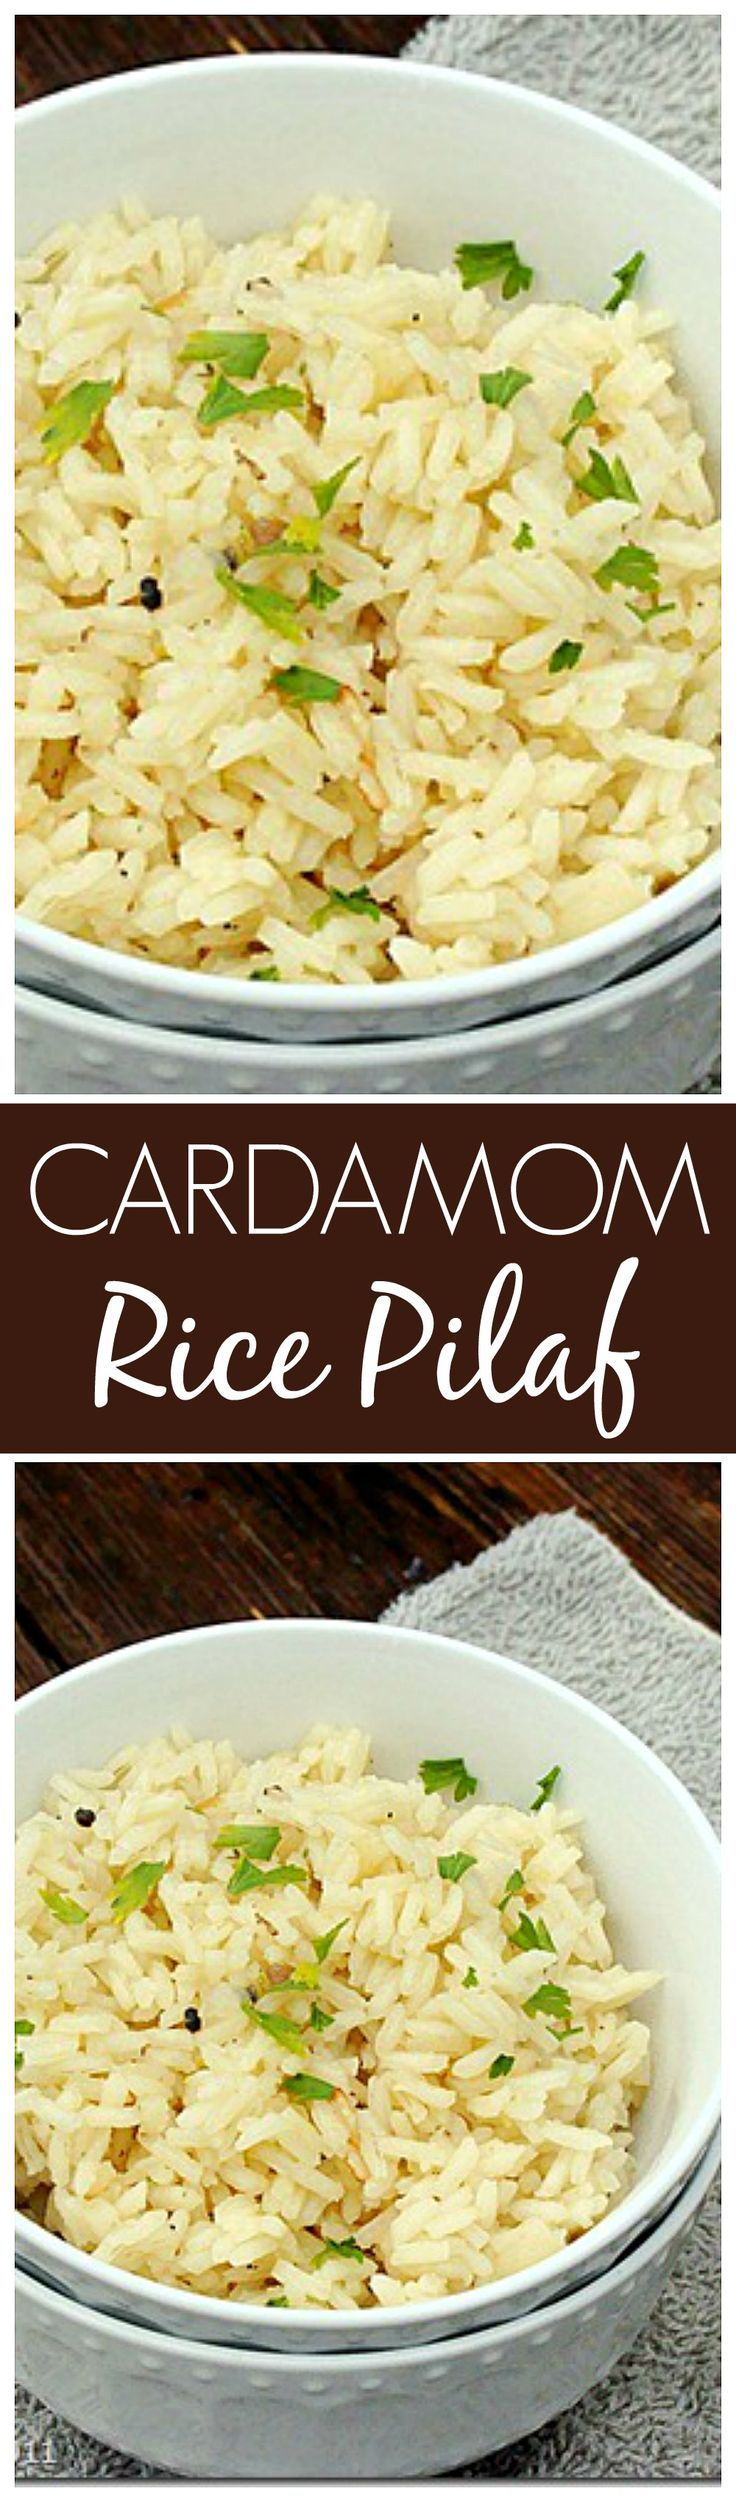 Cardamom Rice Pilaf - Quick and easy recipe for rice pilaf with basmati rice and cardamom.